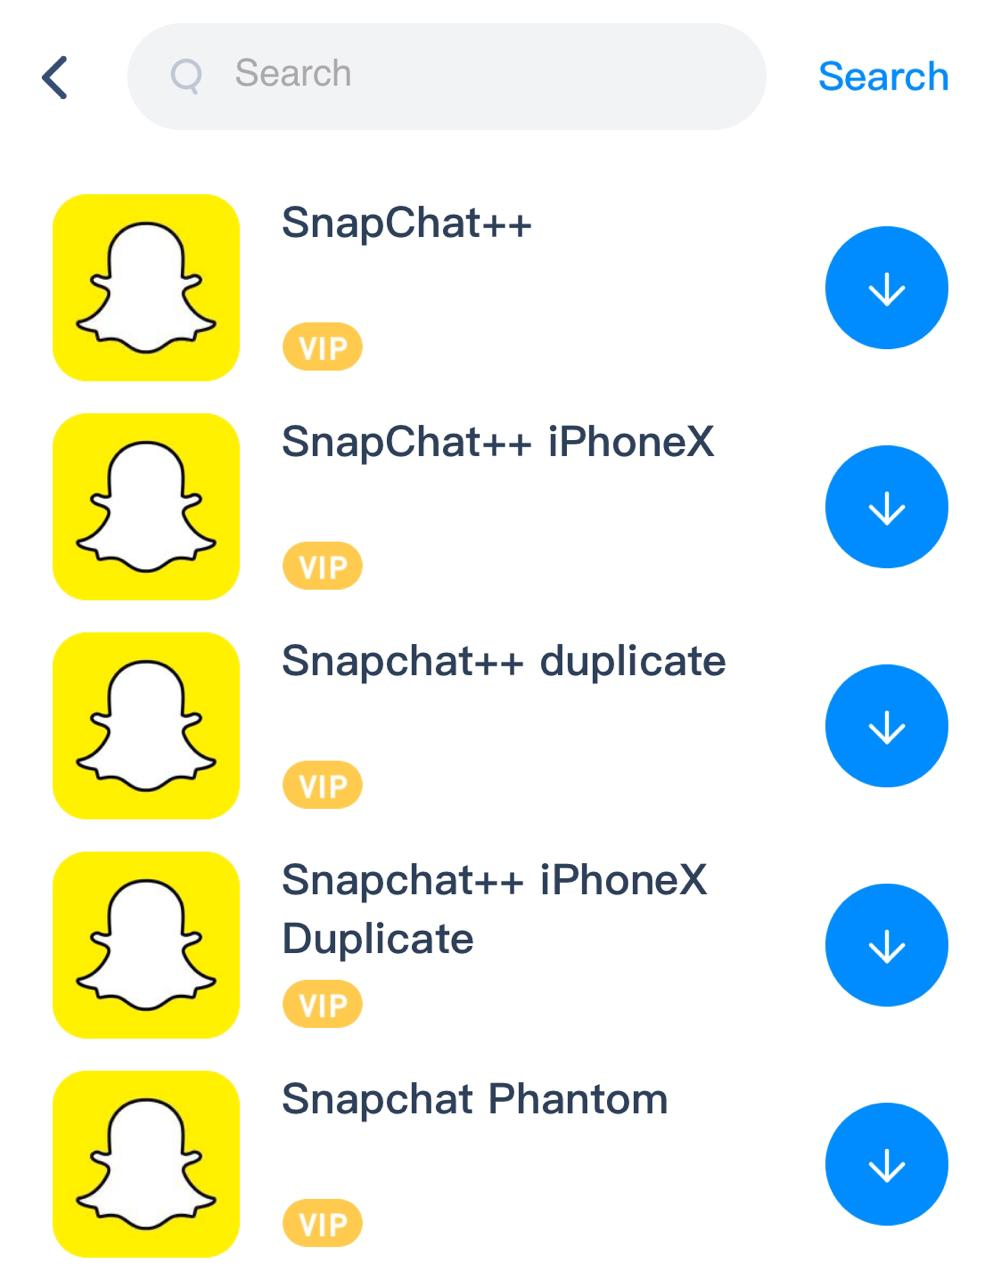 Tap on SnapChat++ on iOS